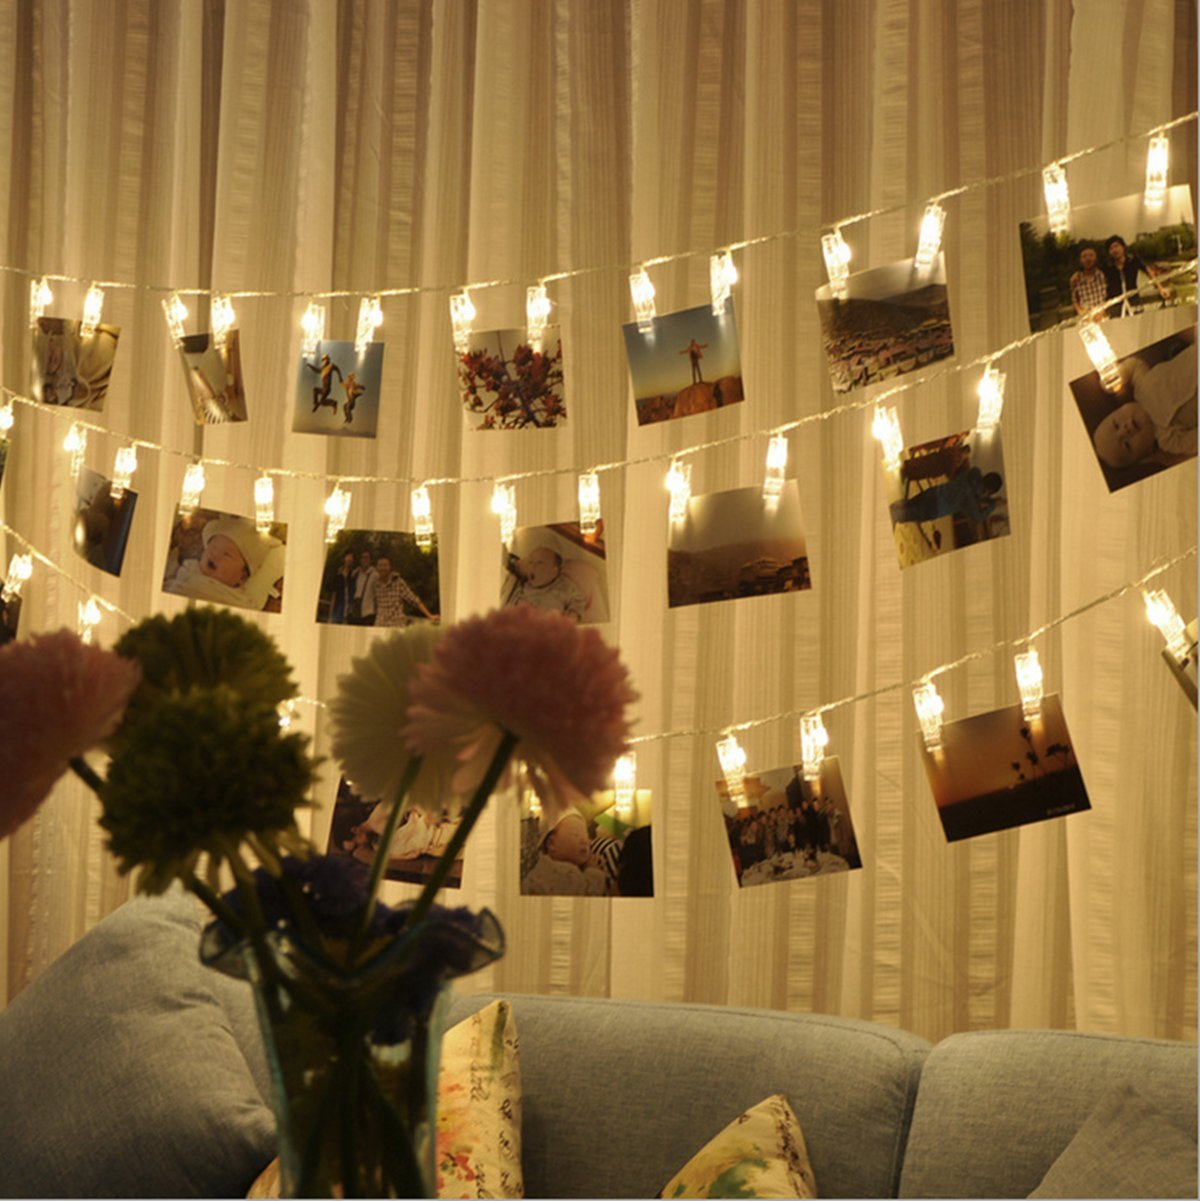 Amazon.com: MZD8391 [Upgraded] 50 Photo Clips String Lights/Holder ...